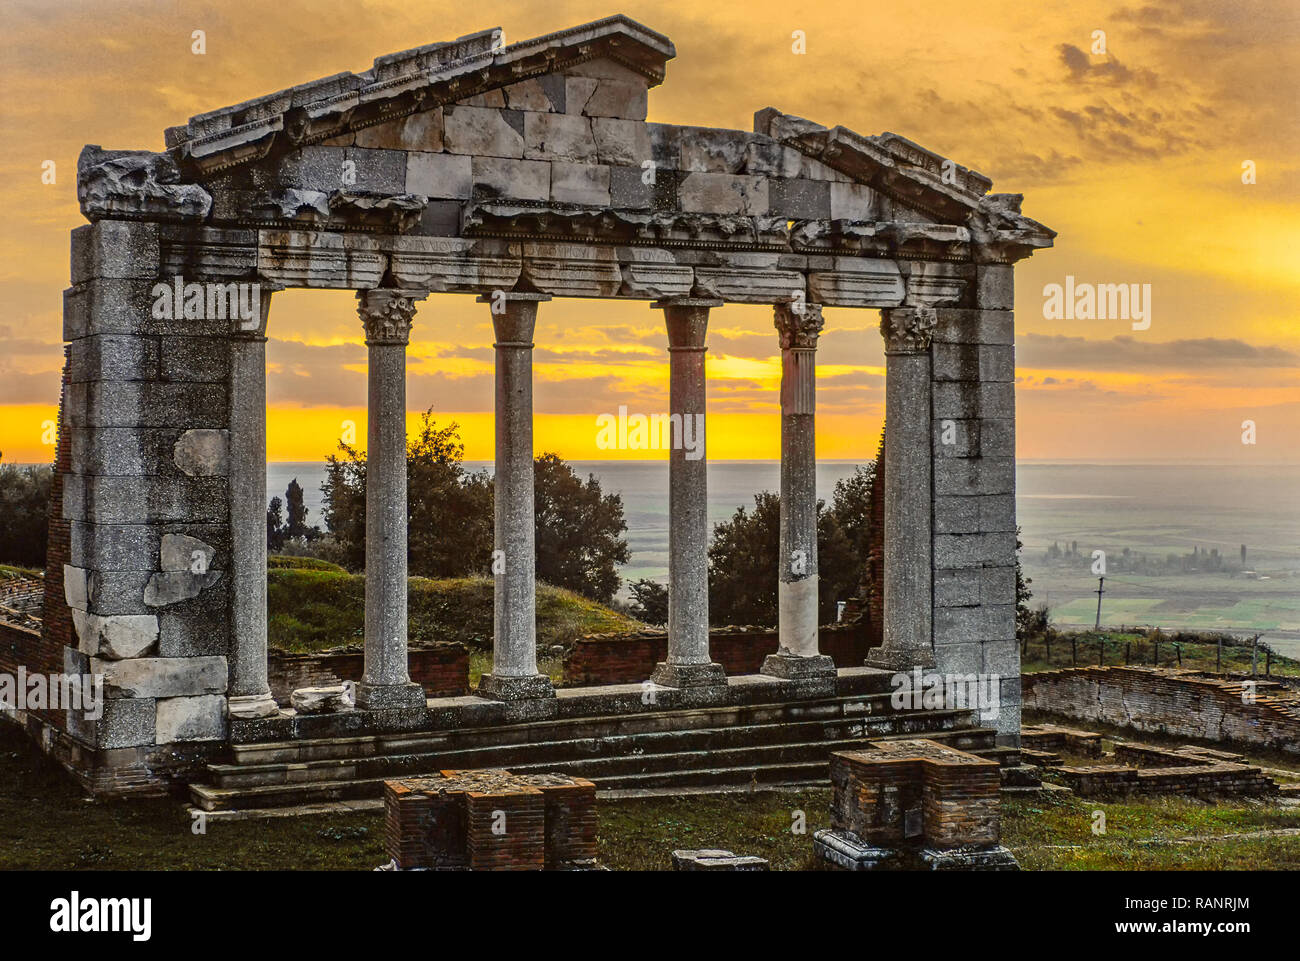 sunrise in the ancient city of Apollonia. Albania - Stock Image